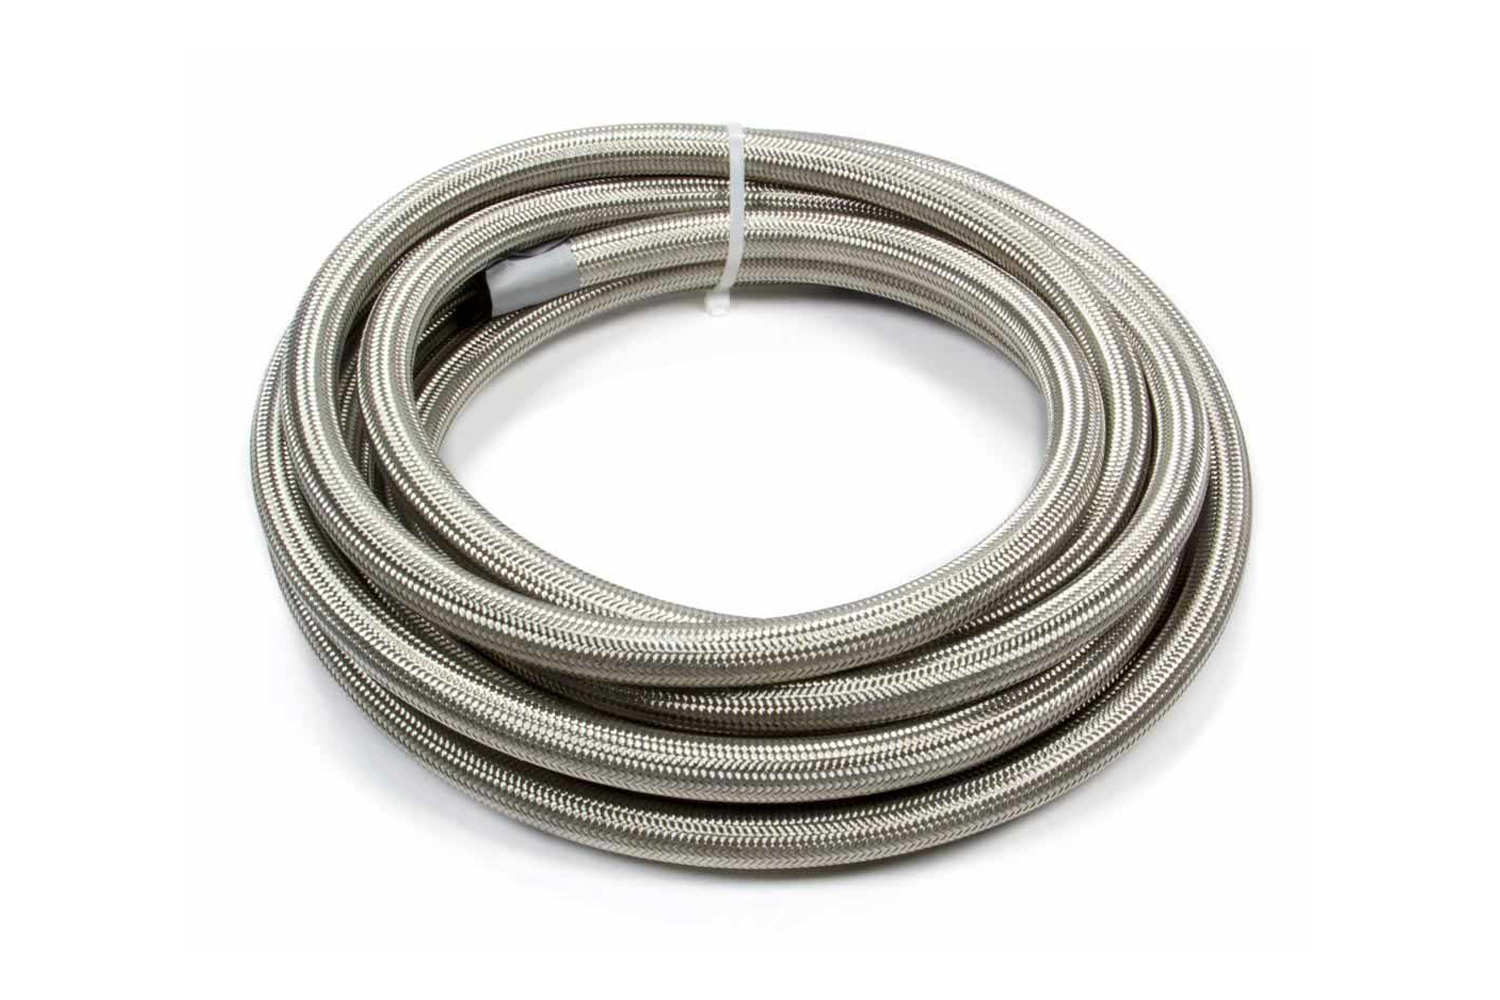 Fragola 720010 Hose, Series 3000, 10 AN, 20 ft, Braided Stainless, Rubber, Natural, Each